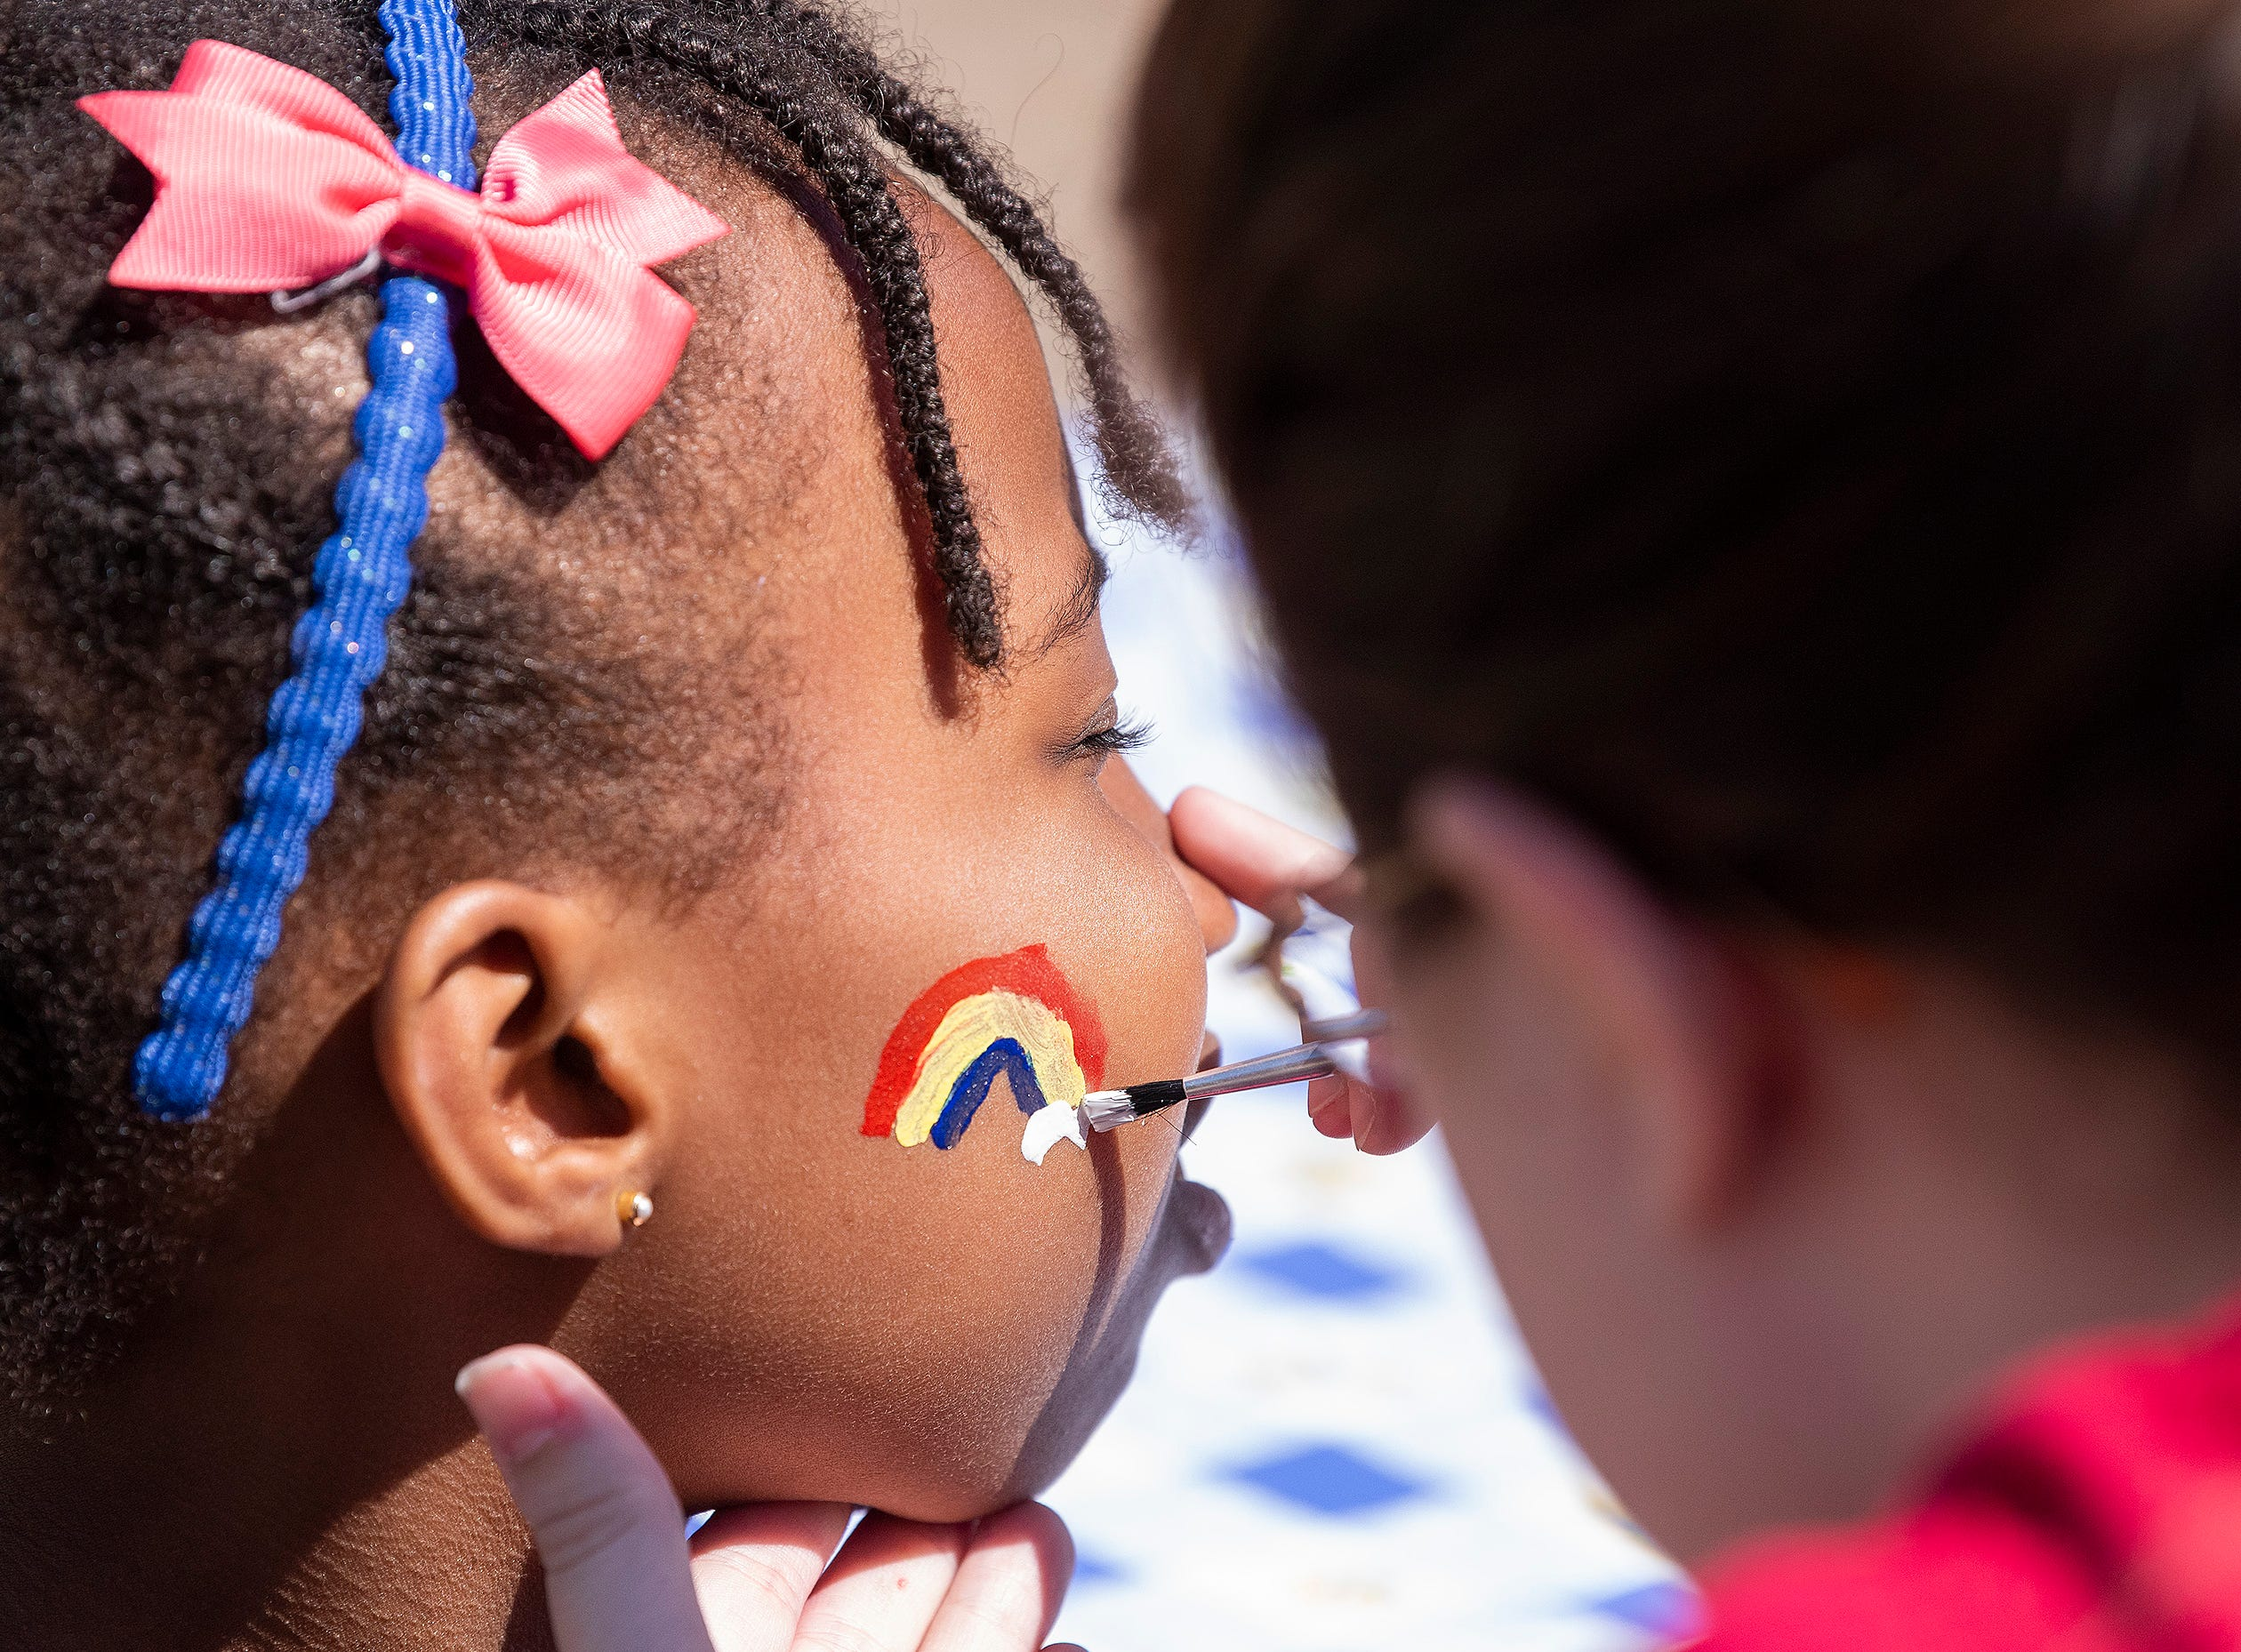 Face painting as Flatline Church hosts a block party for the Chisholm neighborhood in Montgomery, Ala., on Saturday March 23, 2019.